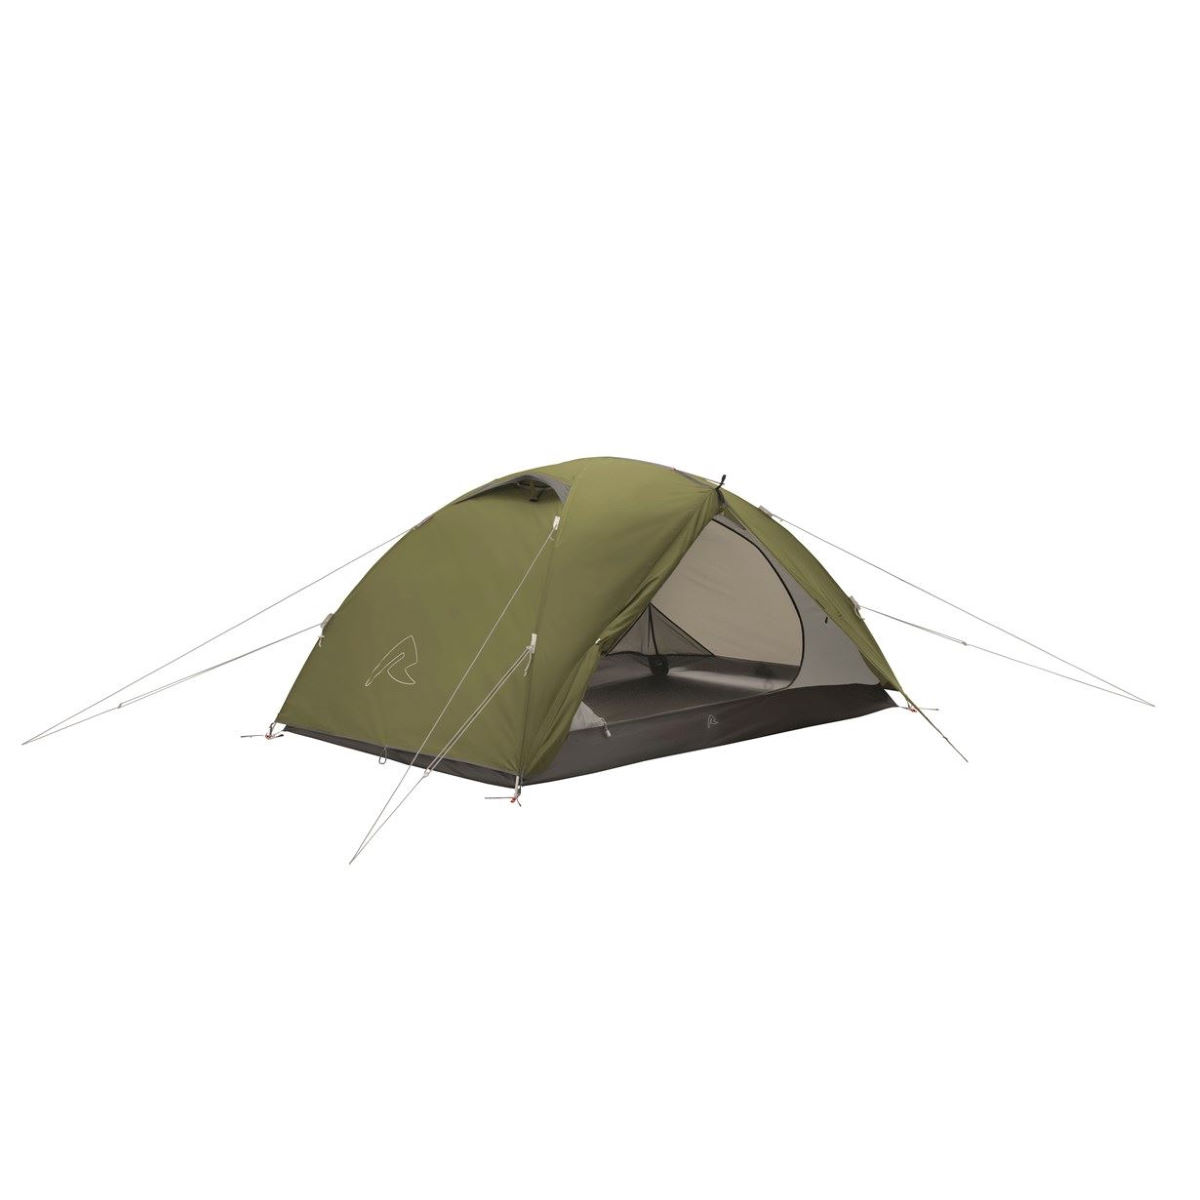 Robens Robens Lodge 2Person Tent   Tents